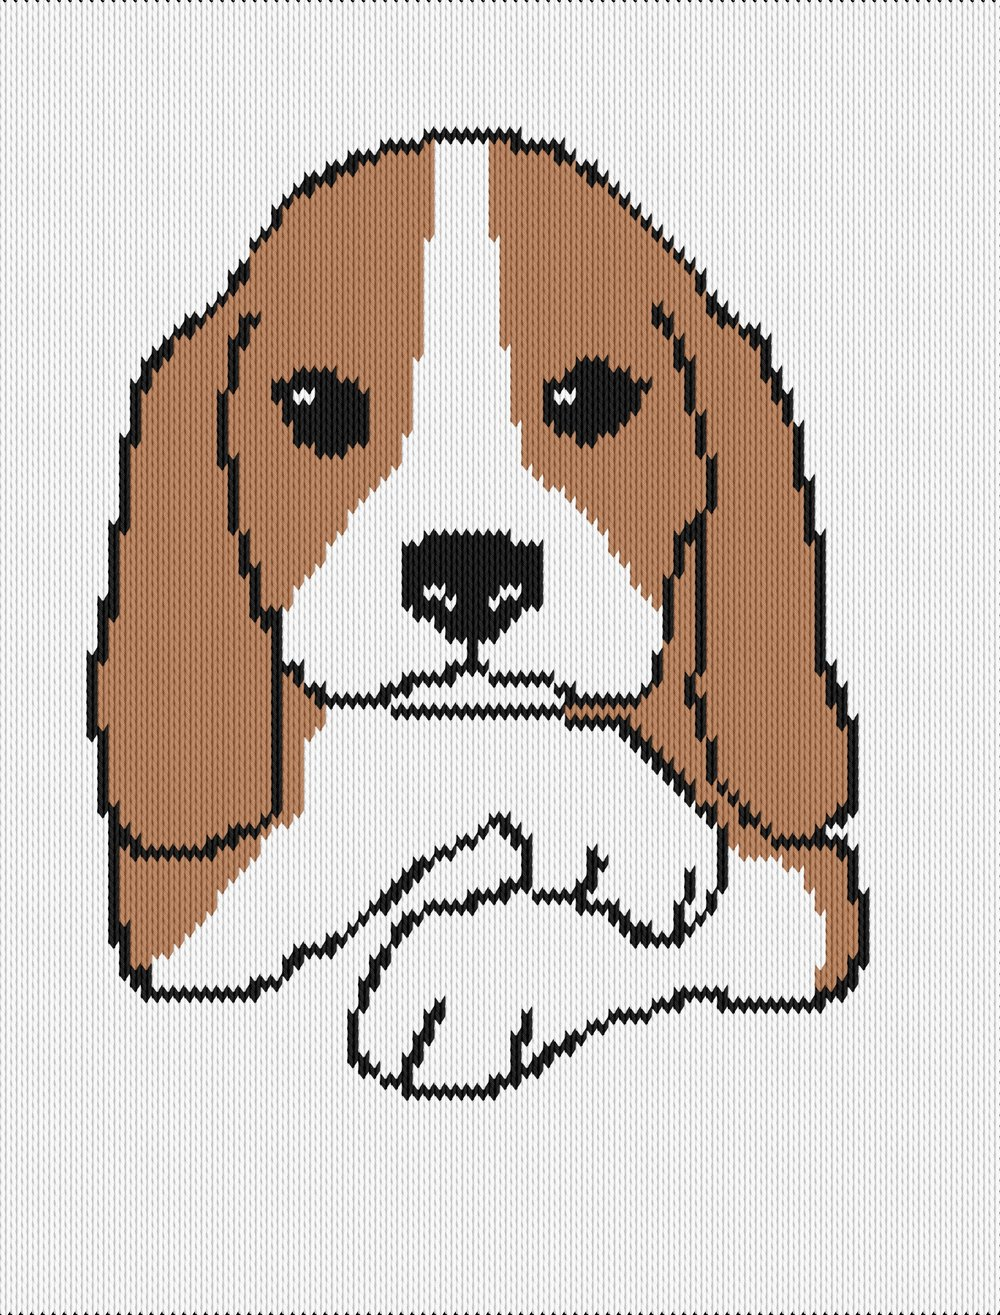 Knitting motif chart, dog